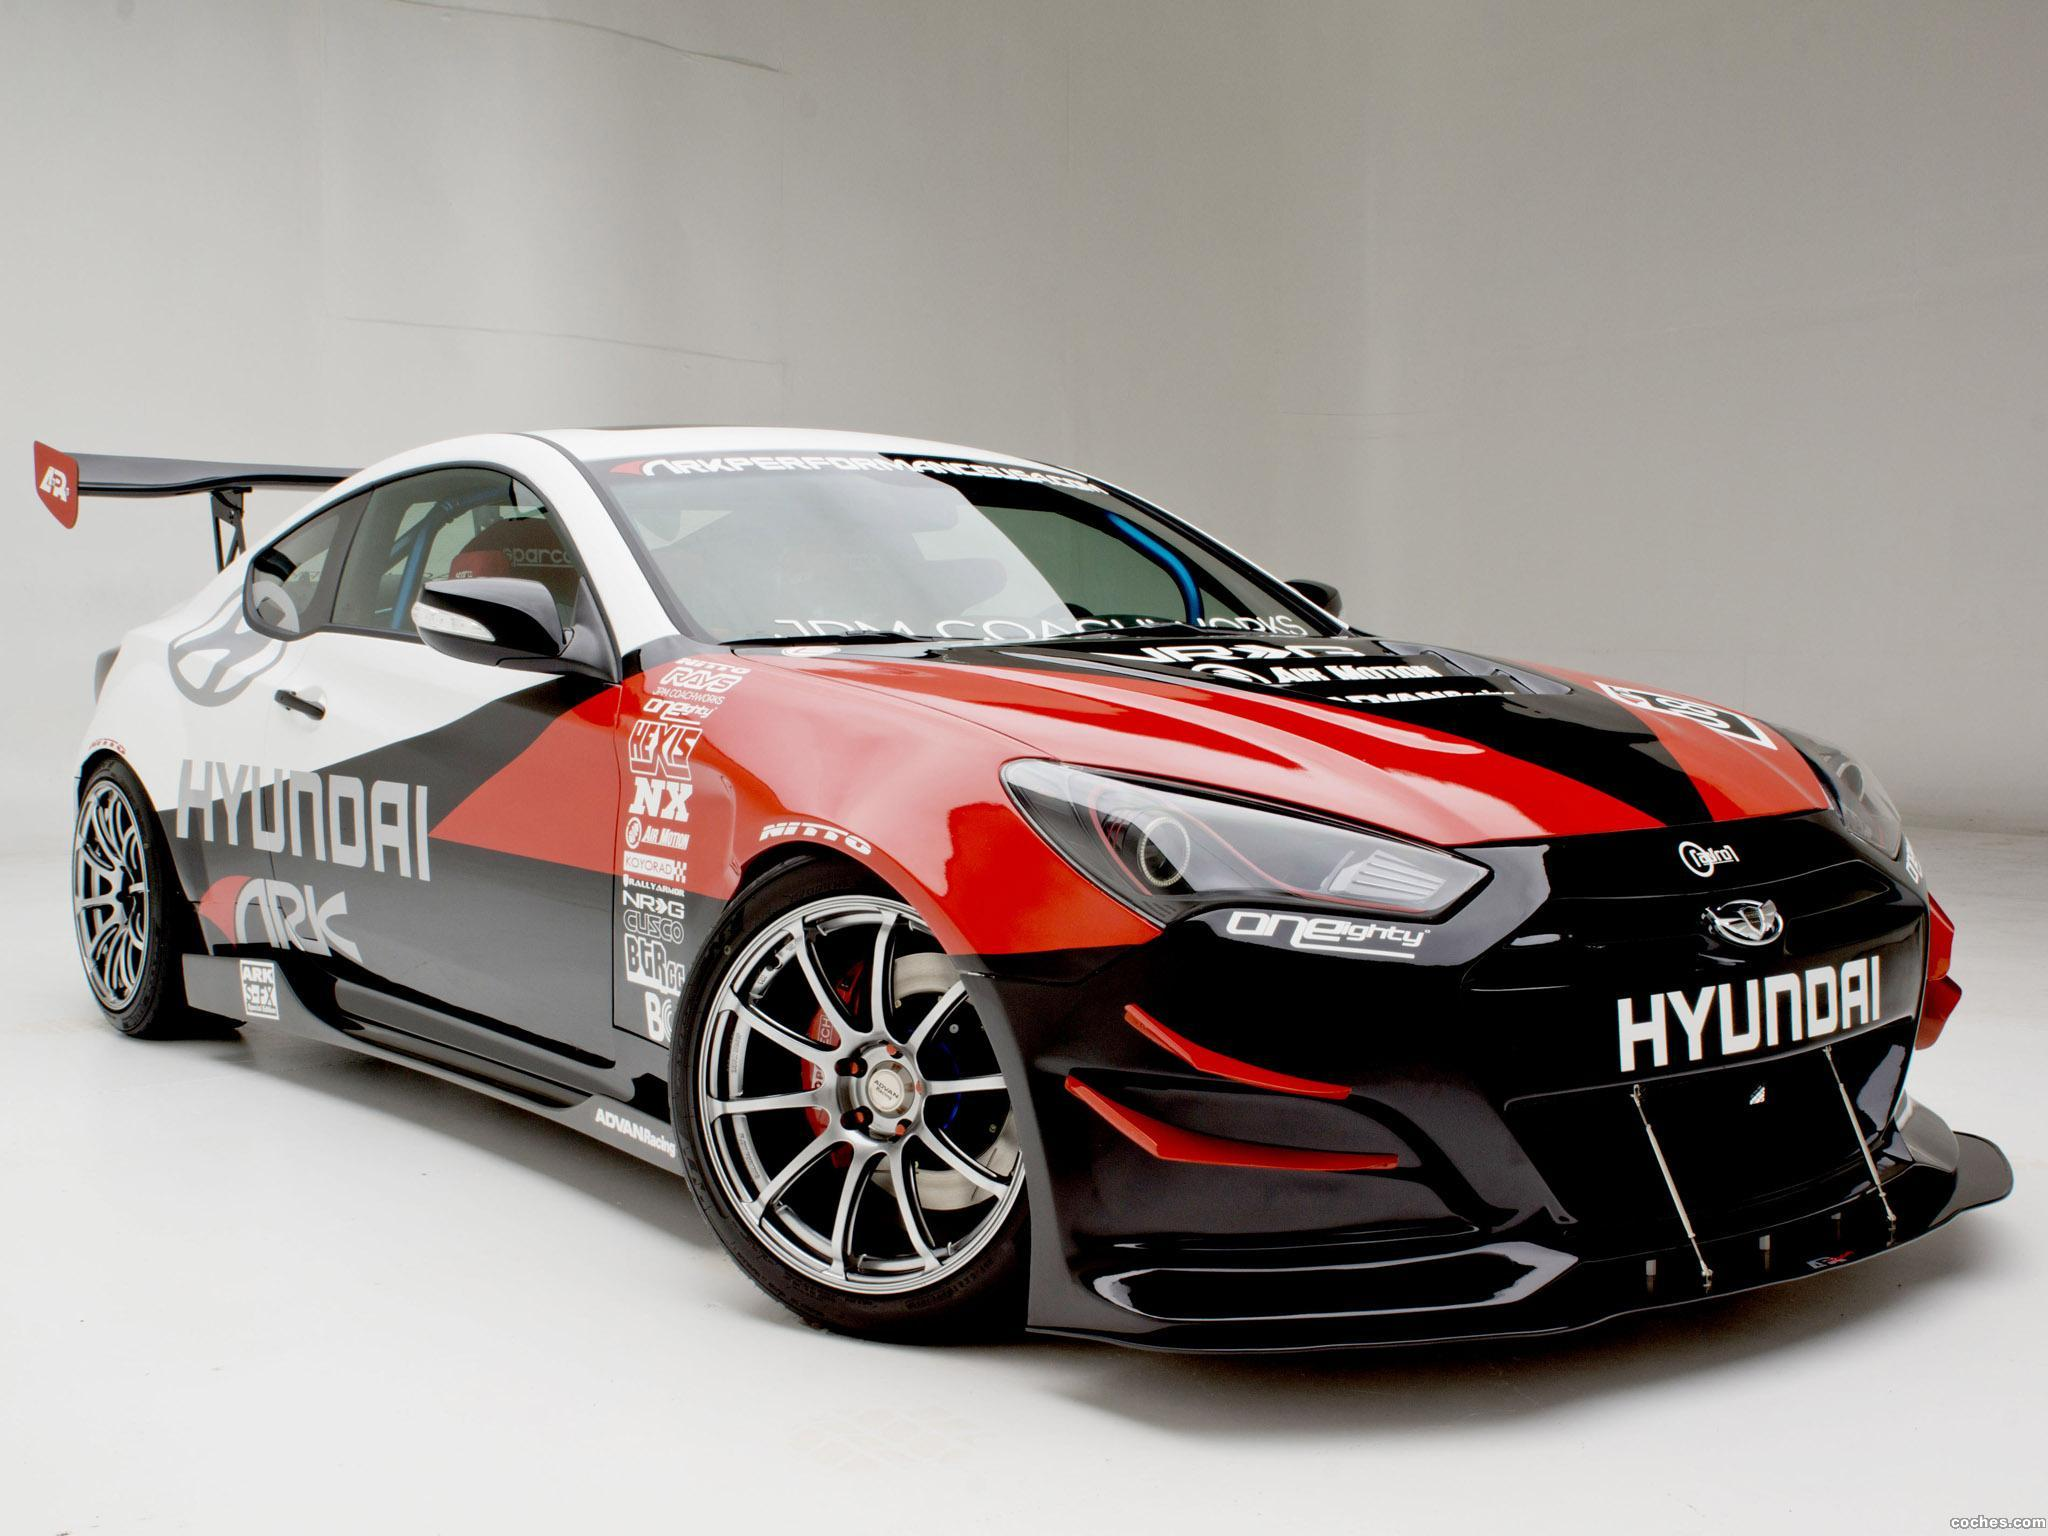 Foto 0 de Hyundai Genesis Coupe R-Spec Track Edition ARK Performance 2012